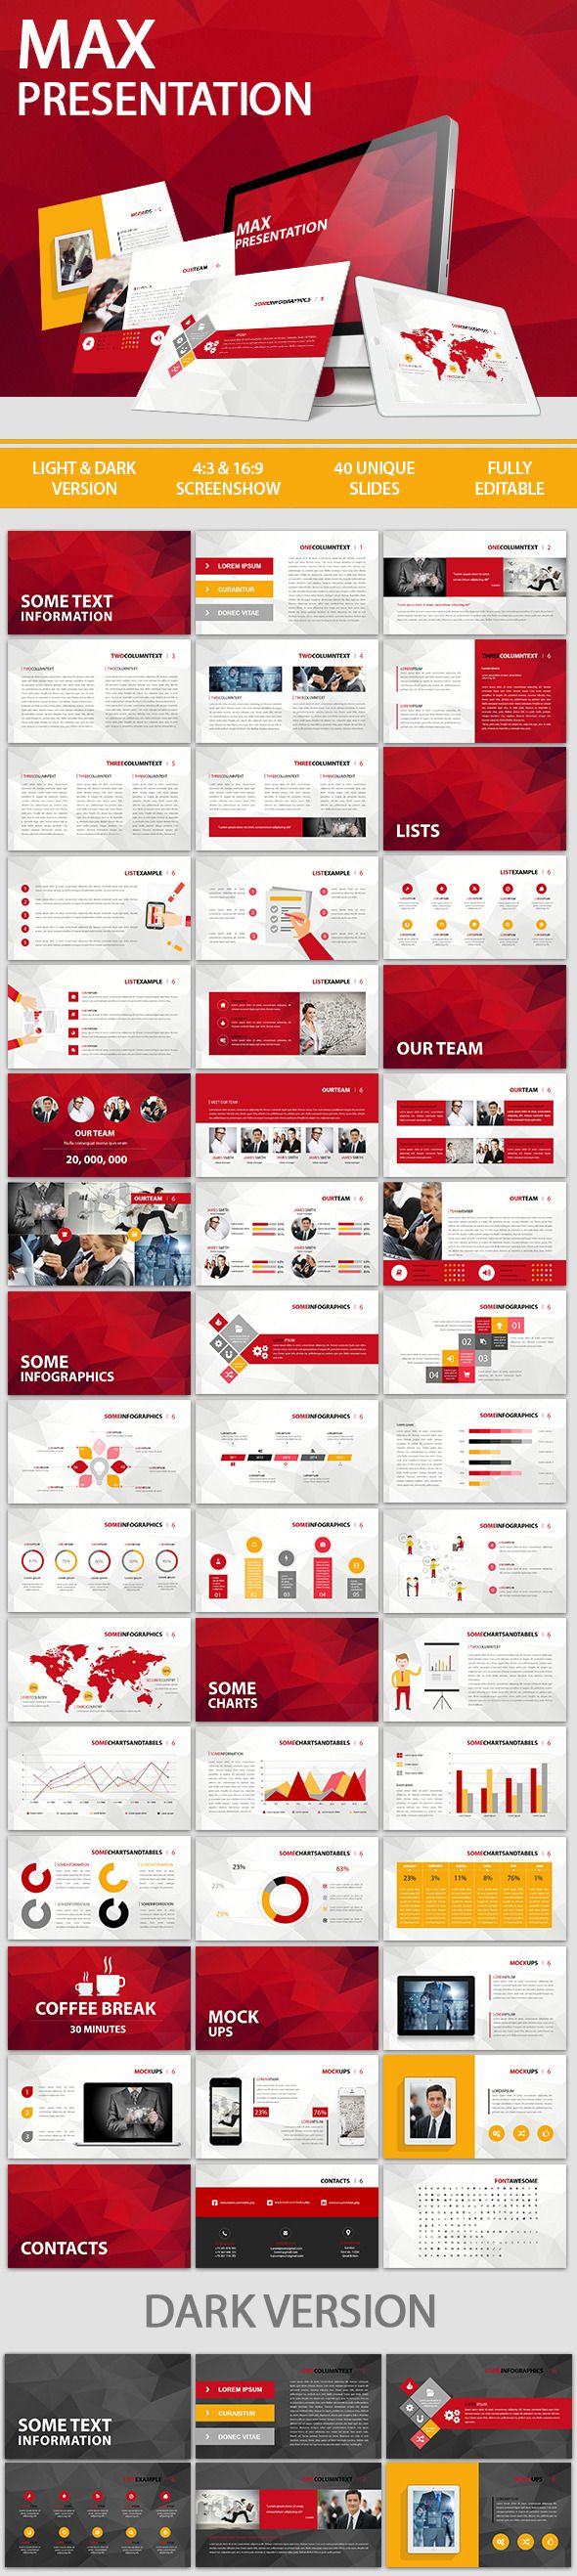 Max Presentation Template #powerpoint #powerpointtemplate Download: http://graphicriver.net/item/max-presentation/10447088?ref=ksioks